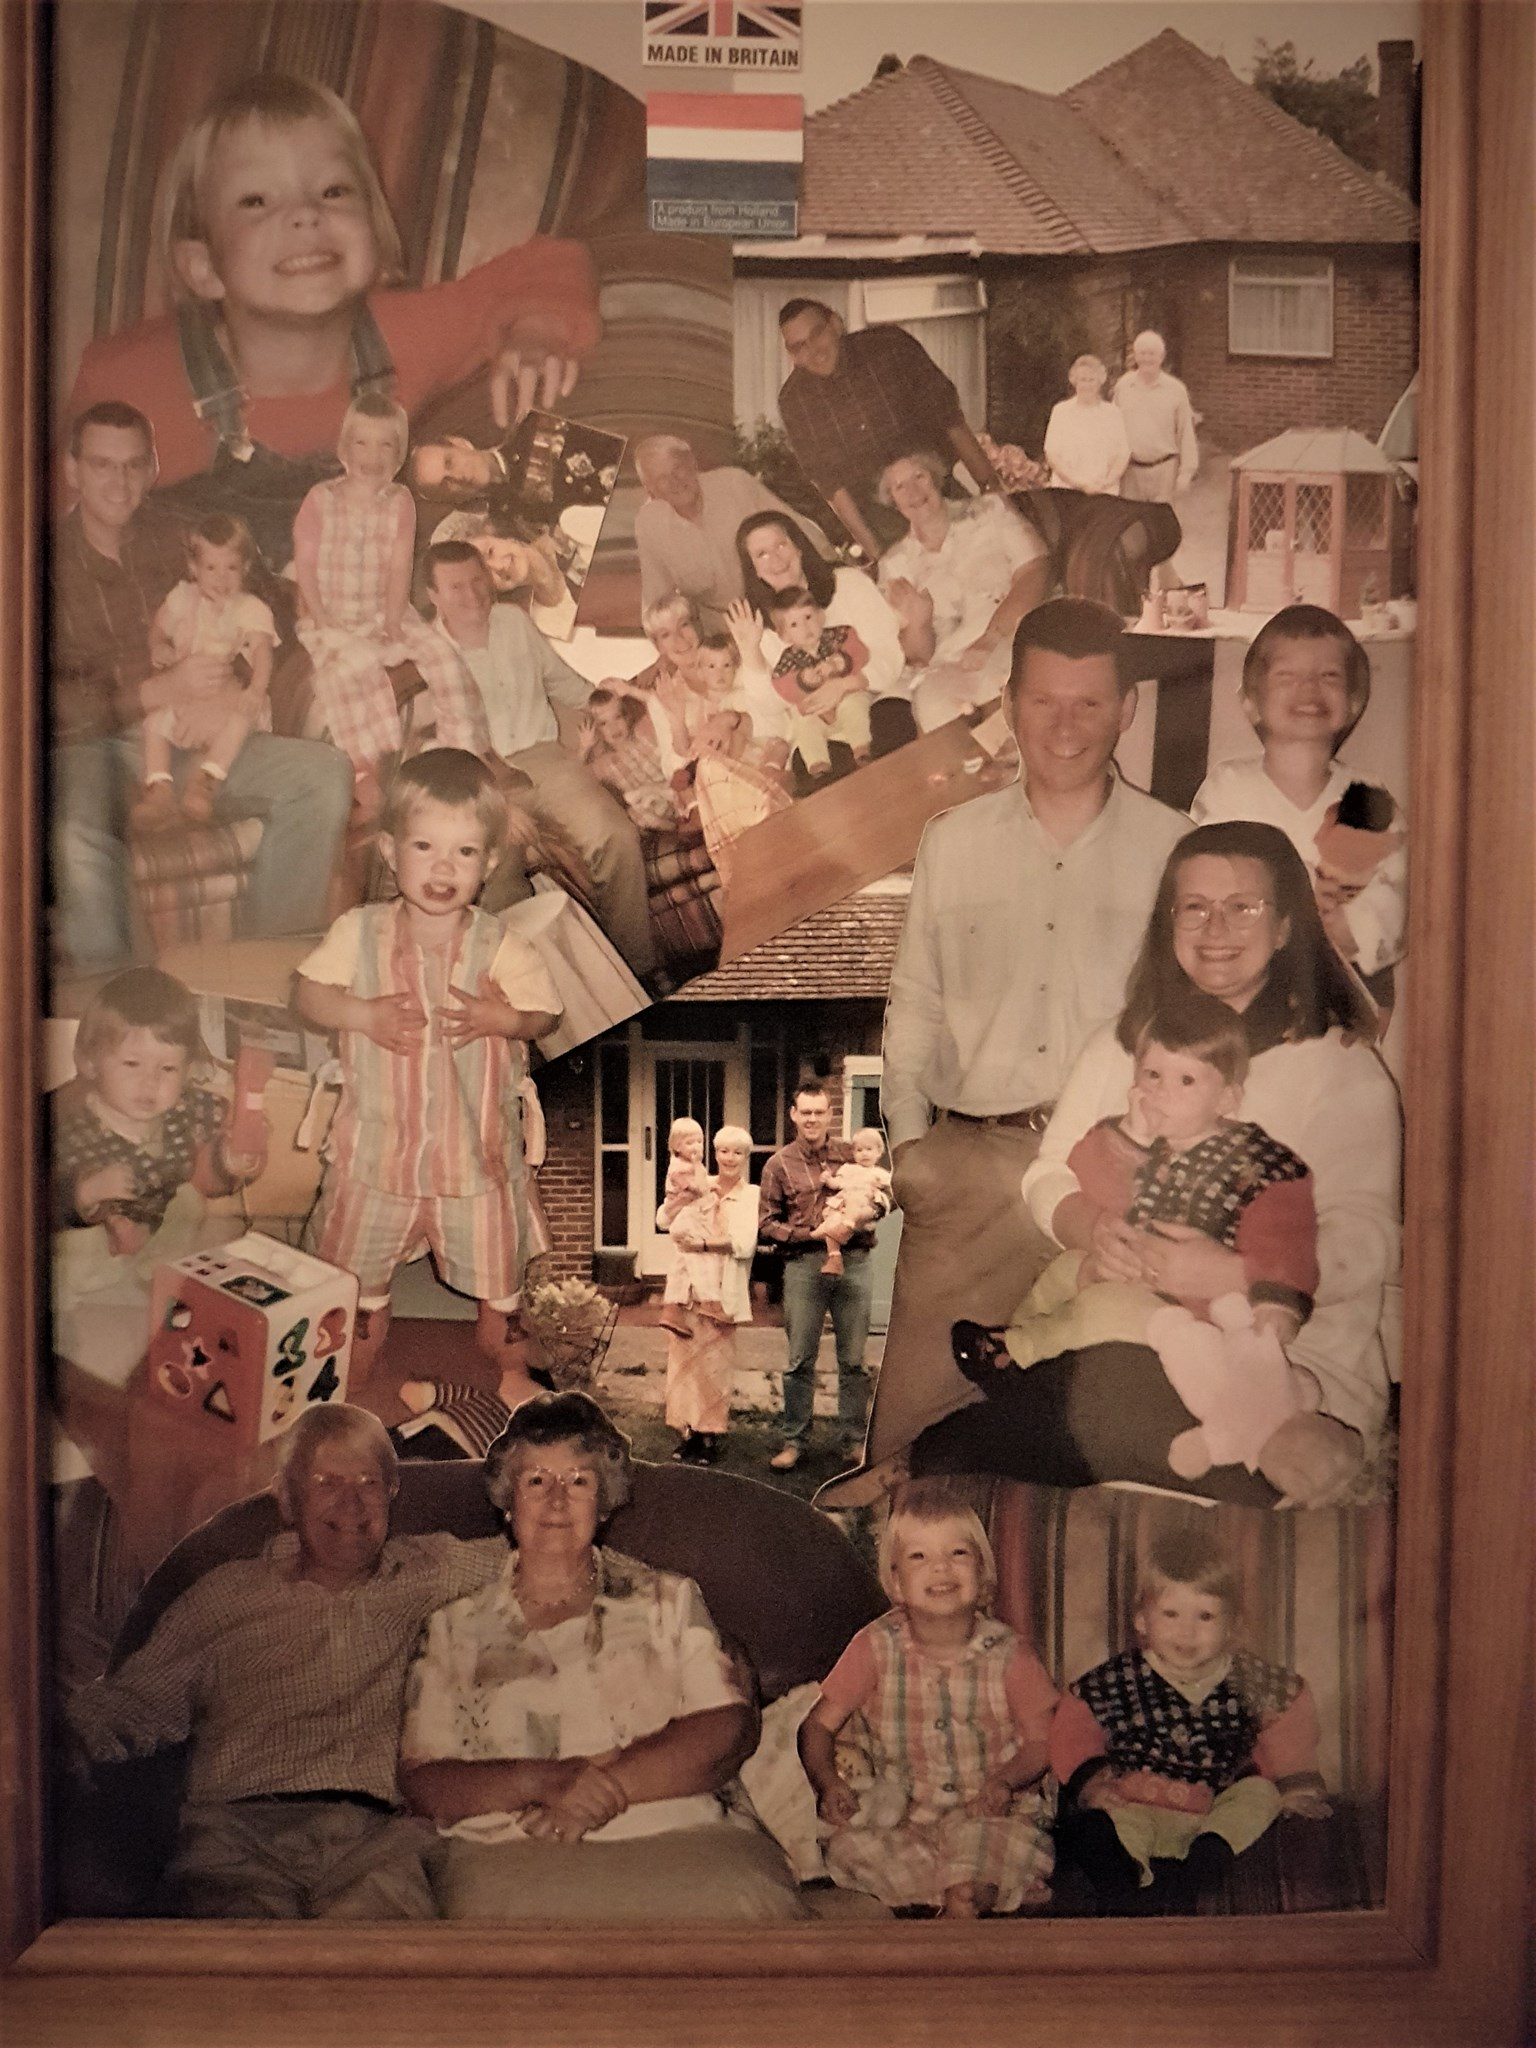 Hamilton Family Collage complete with a Dutch Flag and the Queen & Prince Philip